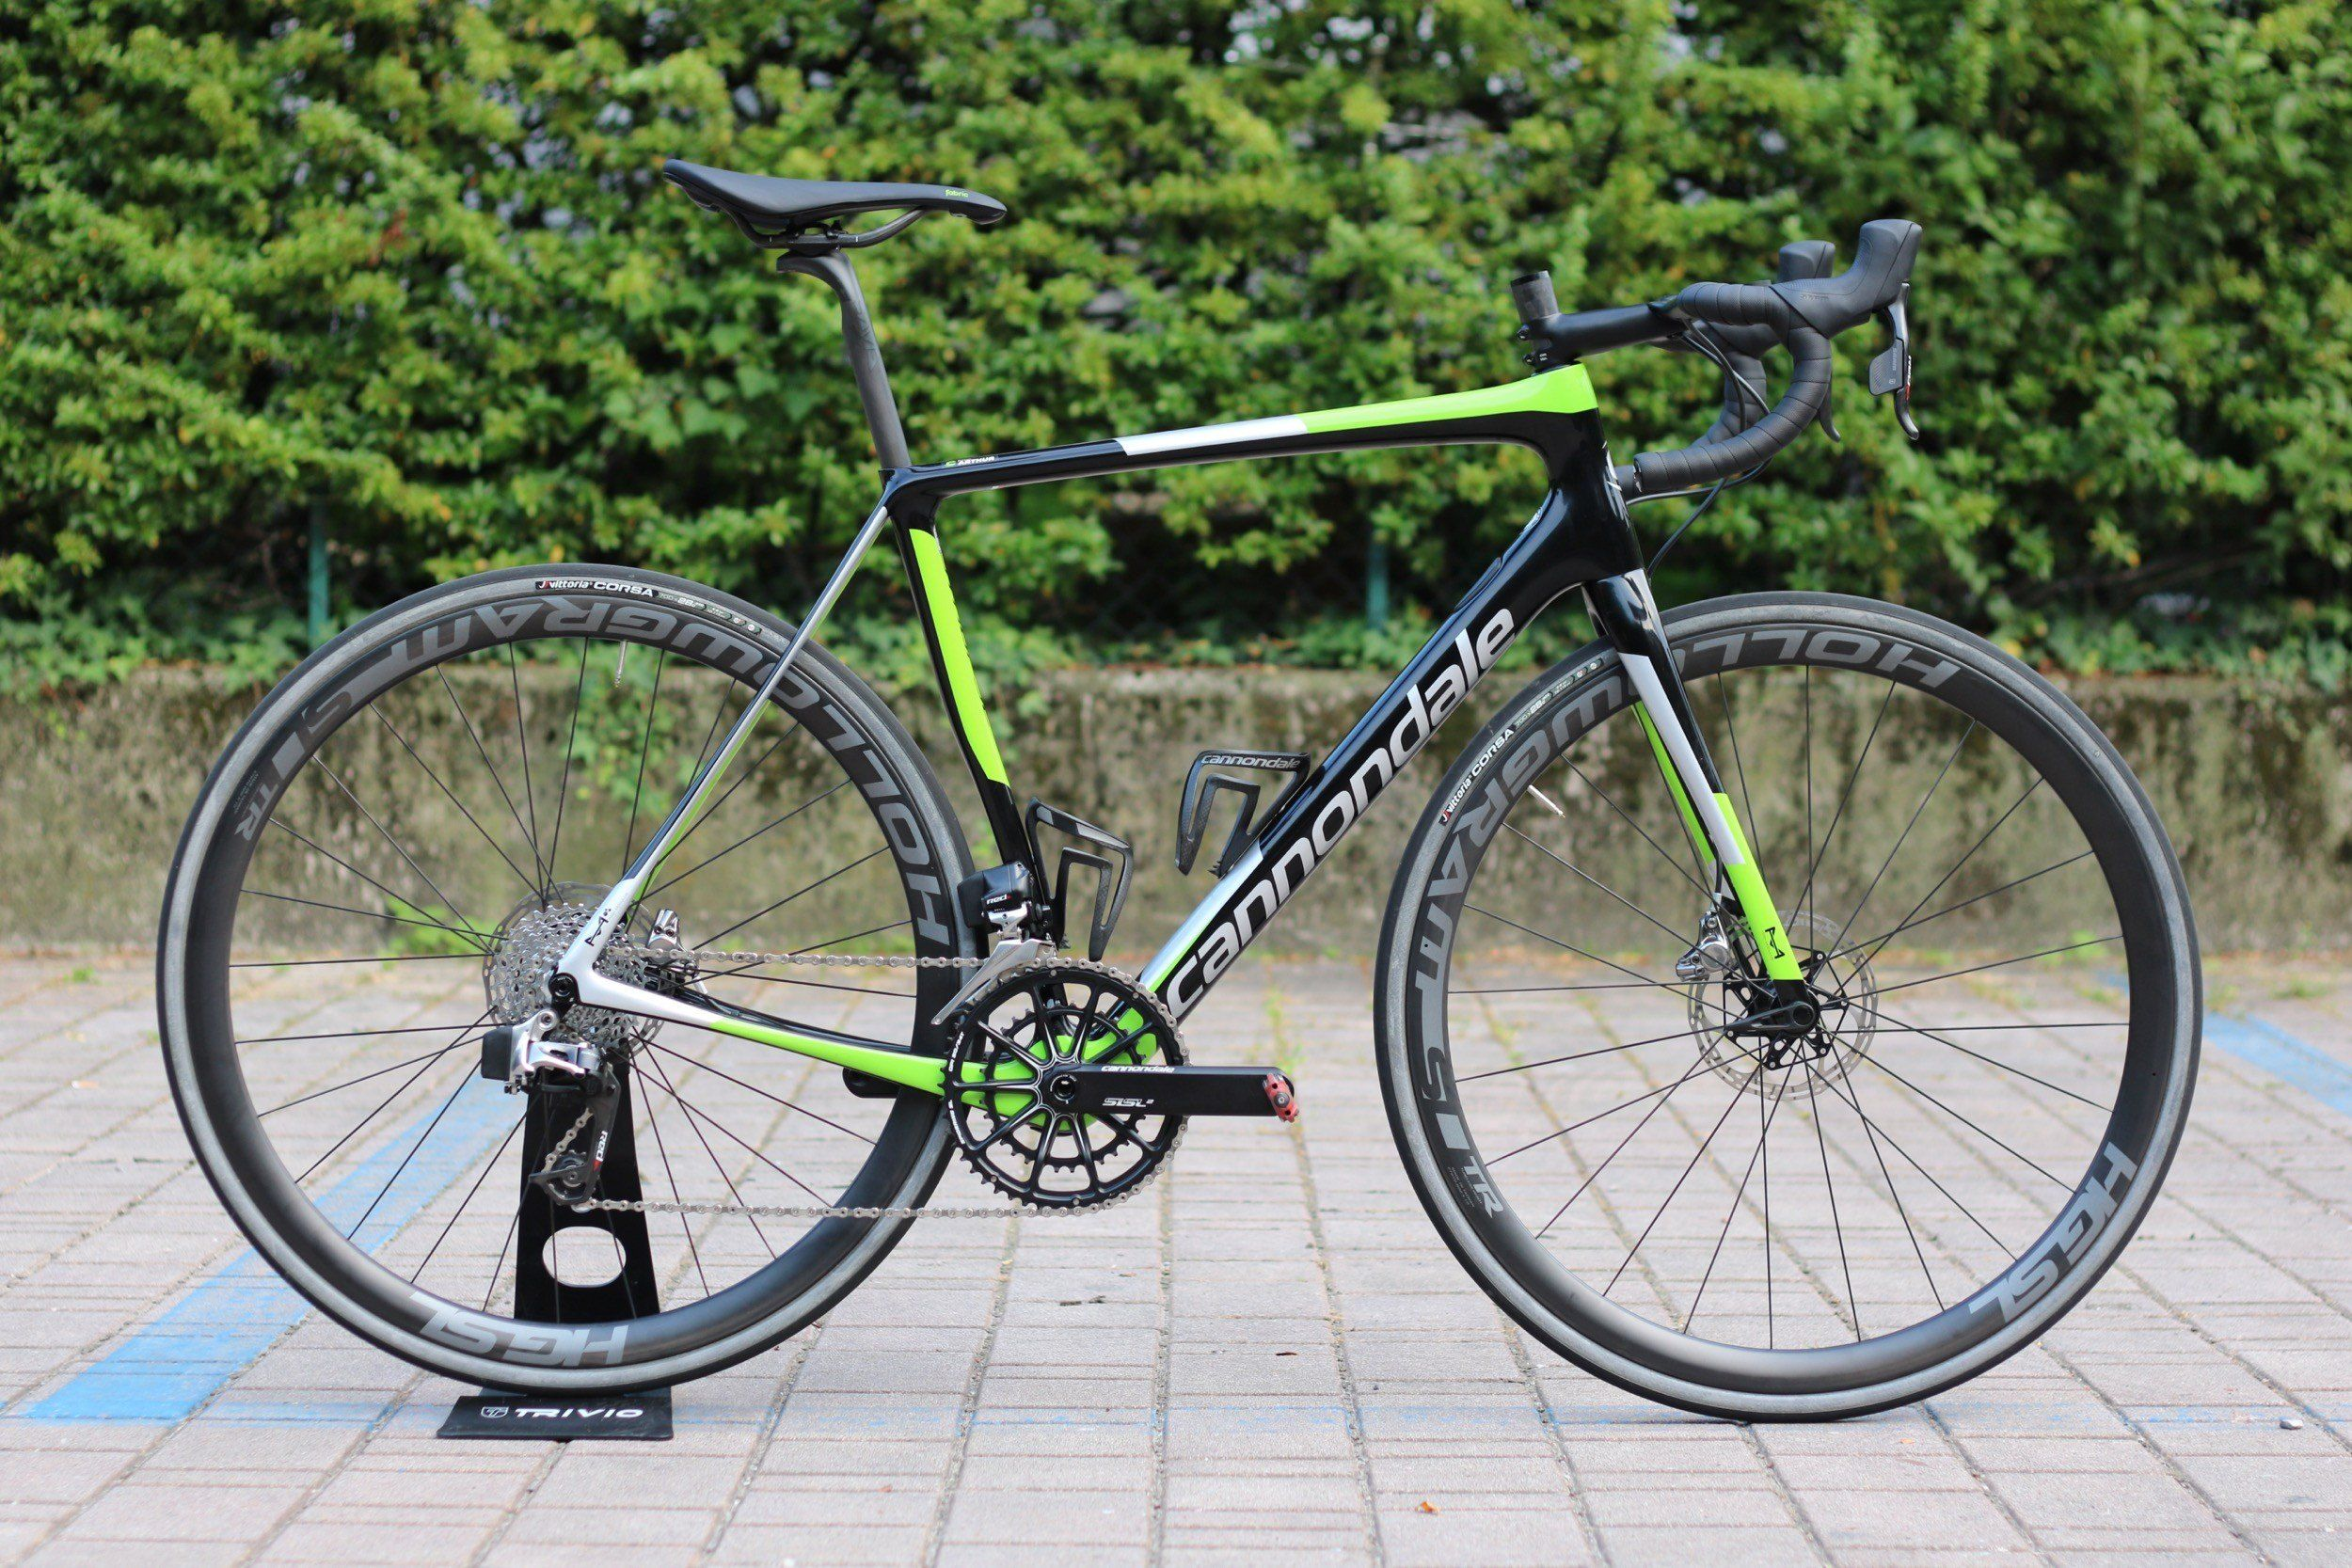 Cannondale Synapse 2018 Lighter And Stiffer Frame Wider Tyres And Disc Brakes Only Ciclismo Bicicletas